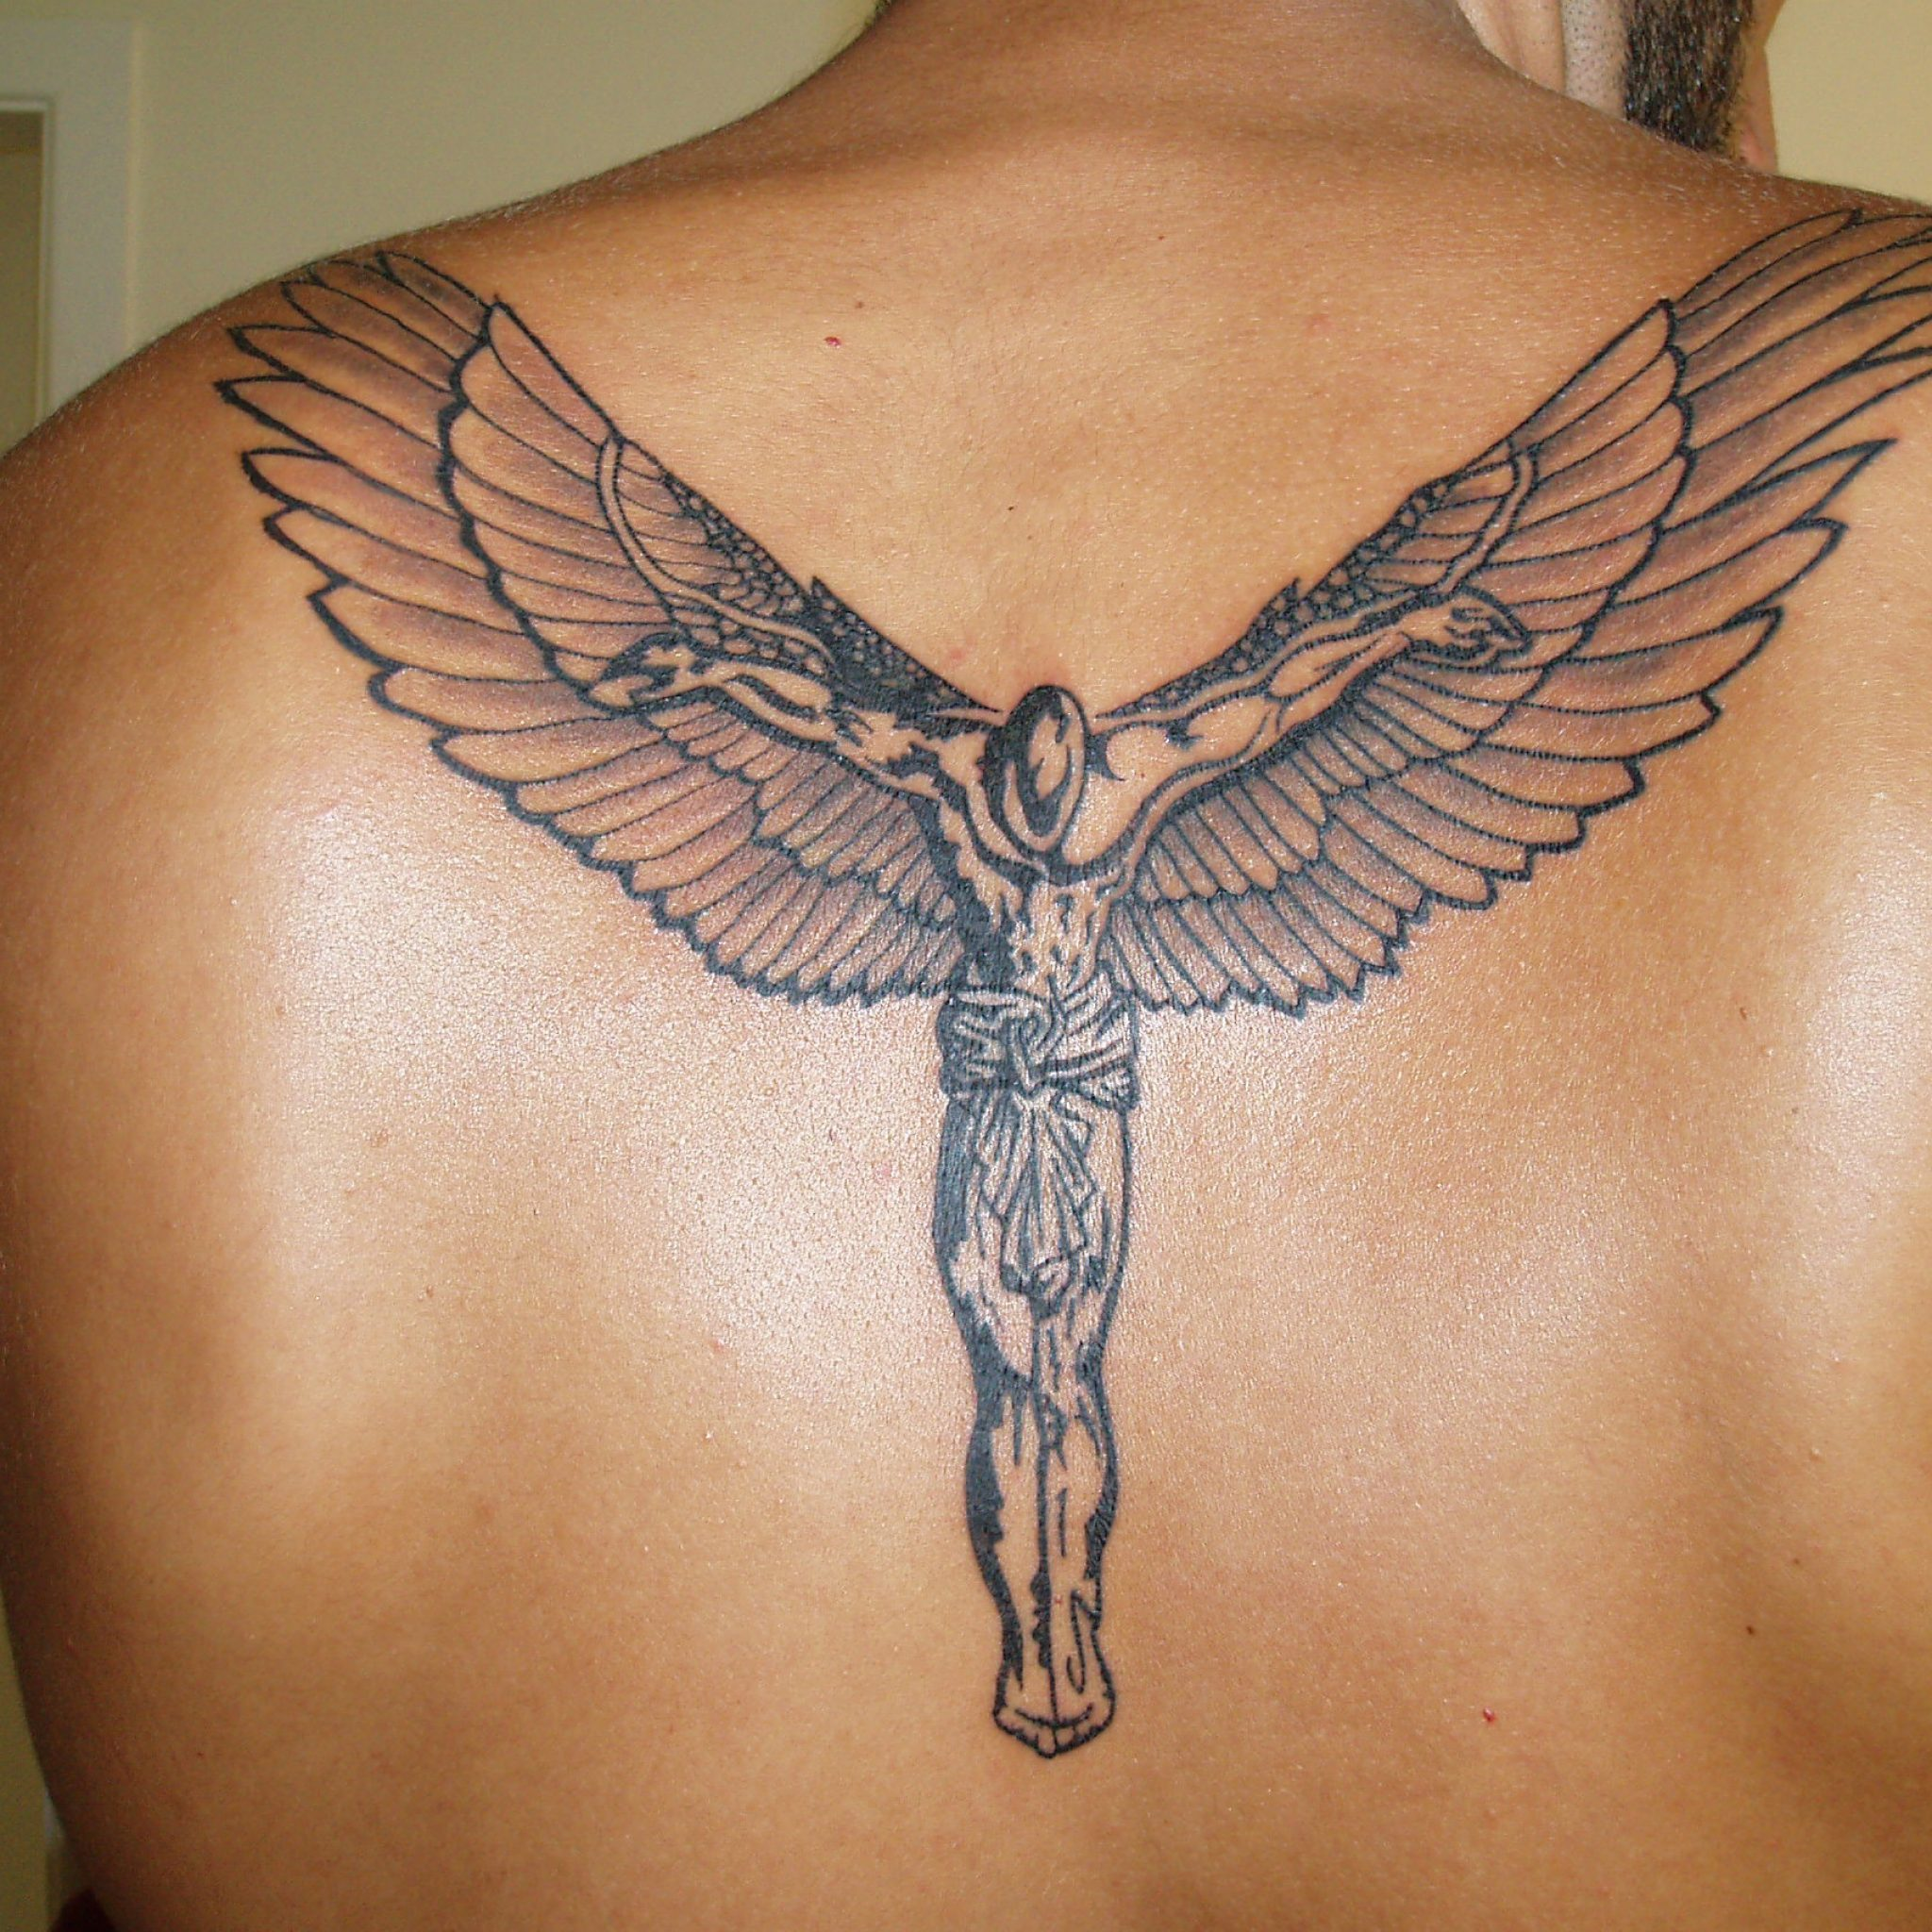 jesus with wings crucifix back tattoo for men